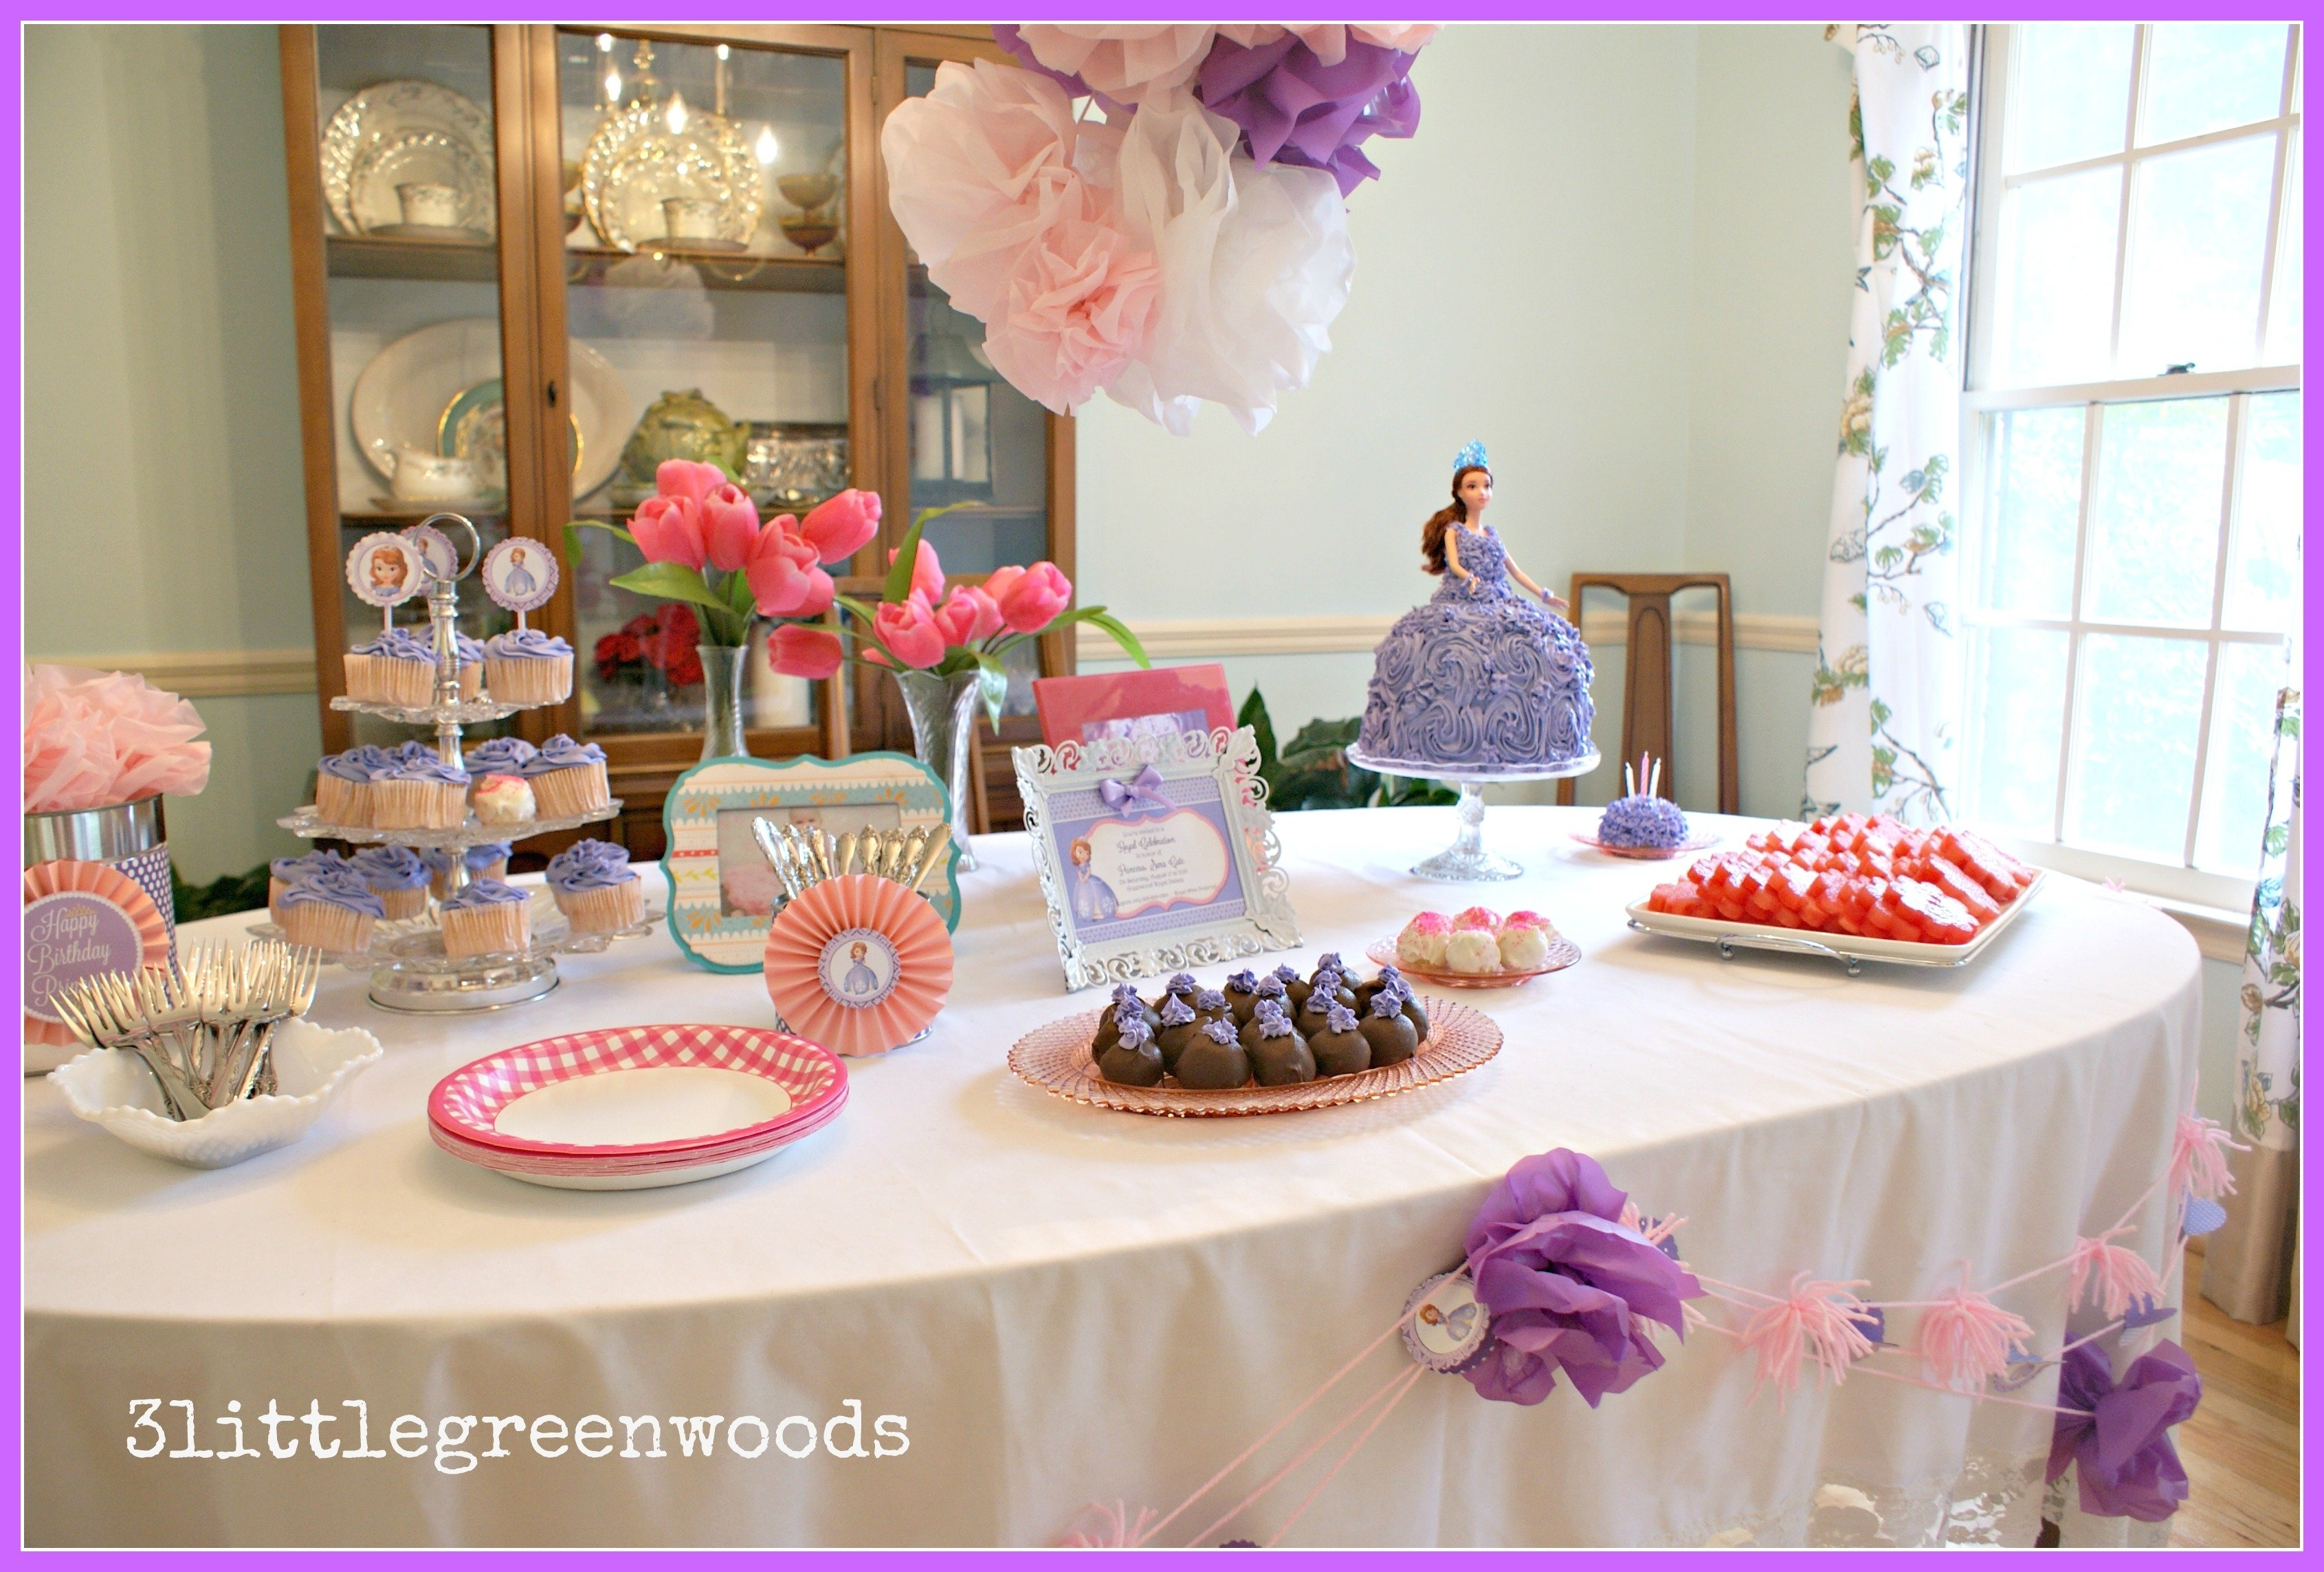 10 Attractive 1St Birthday Princess Party Ideas princess party wall decorations new sofia the first birthday party 2021